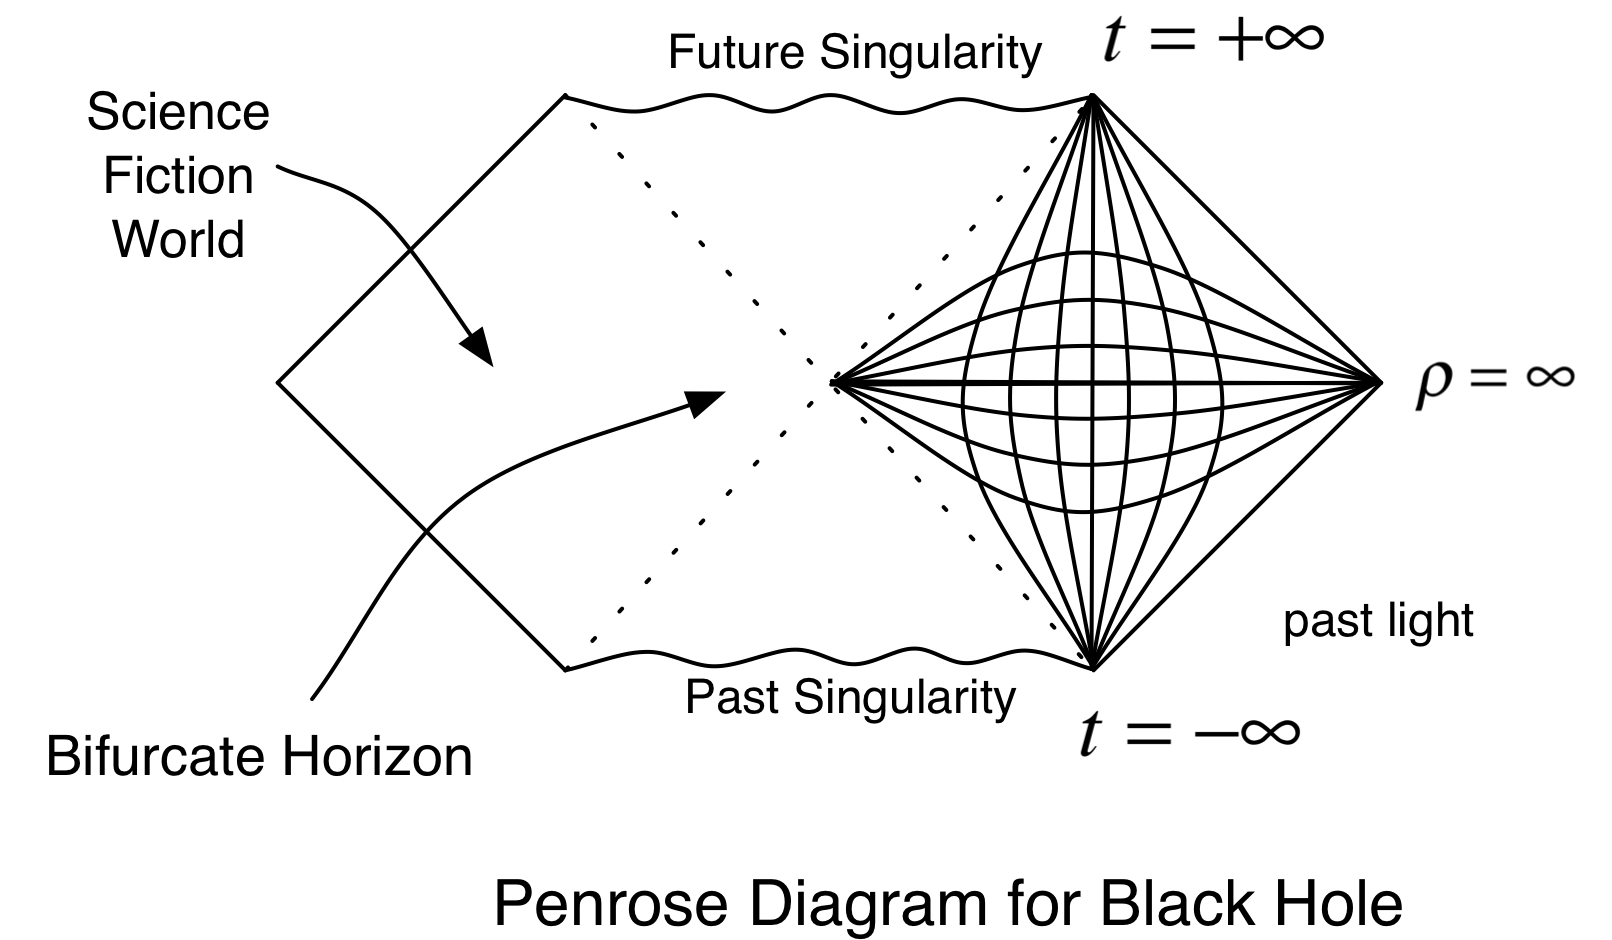 Now We Can Draw A Morecomplicated Diagram For A Black Hole